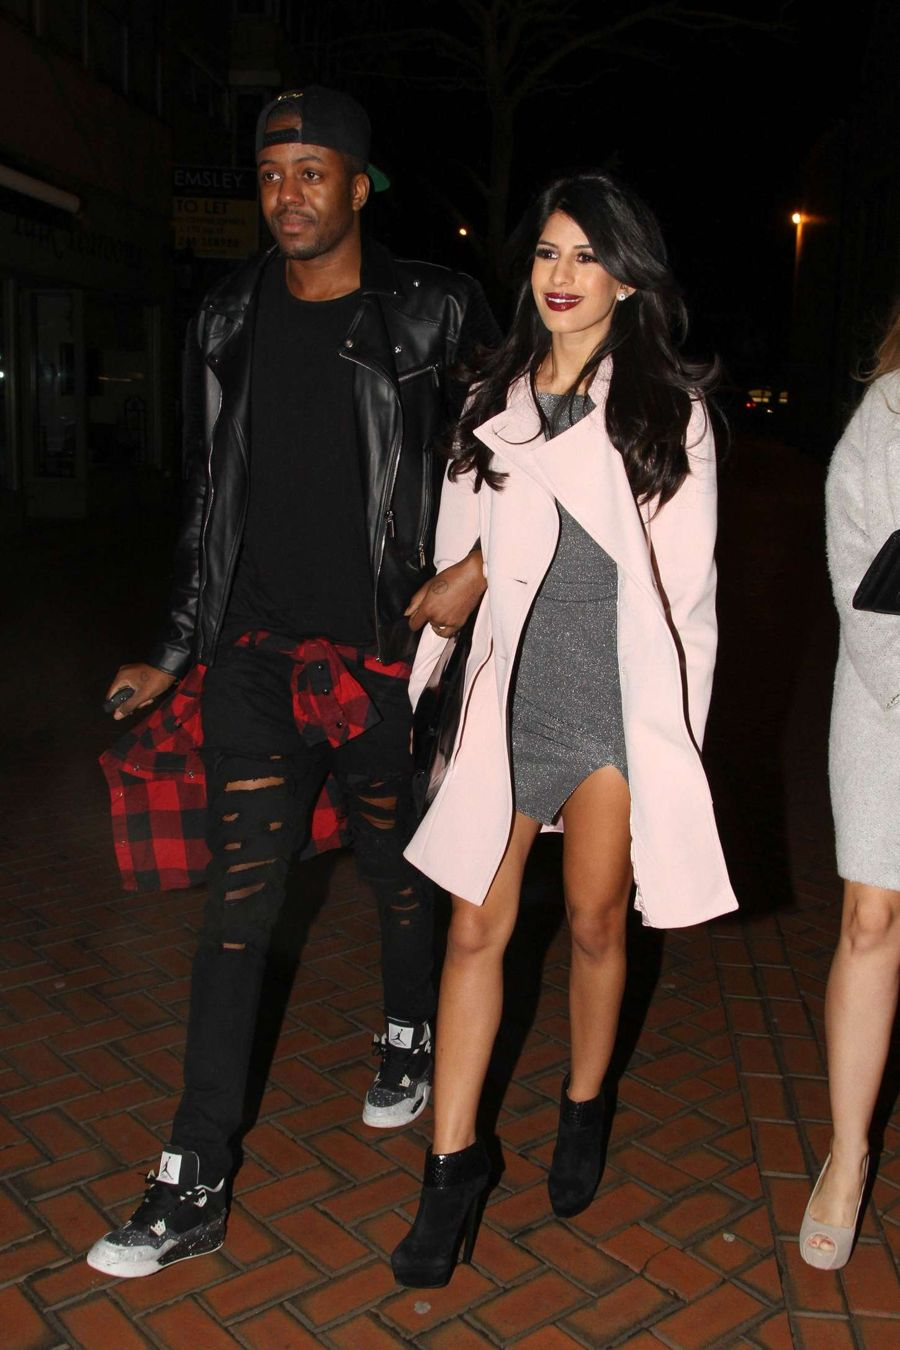 Jasmin Walia at CTZN Nightclub in Chelmsford